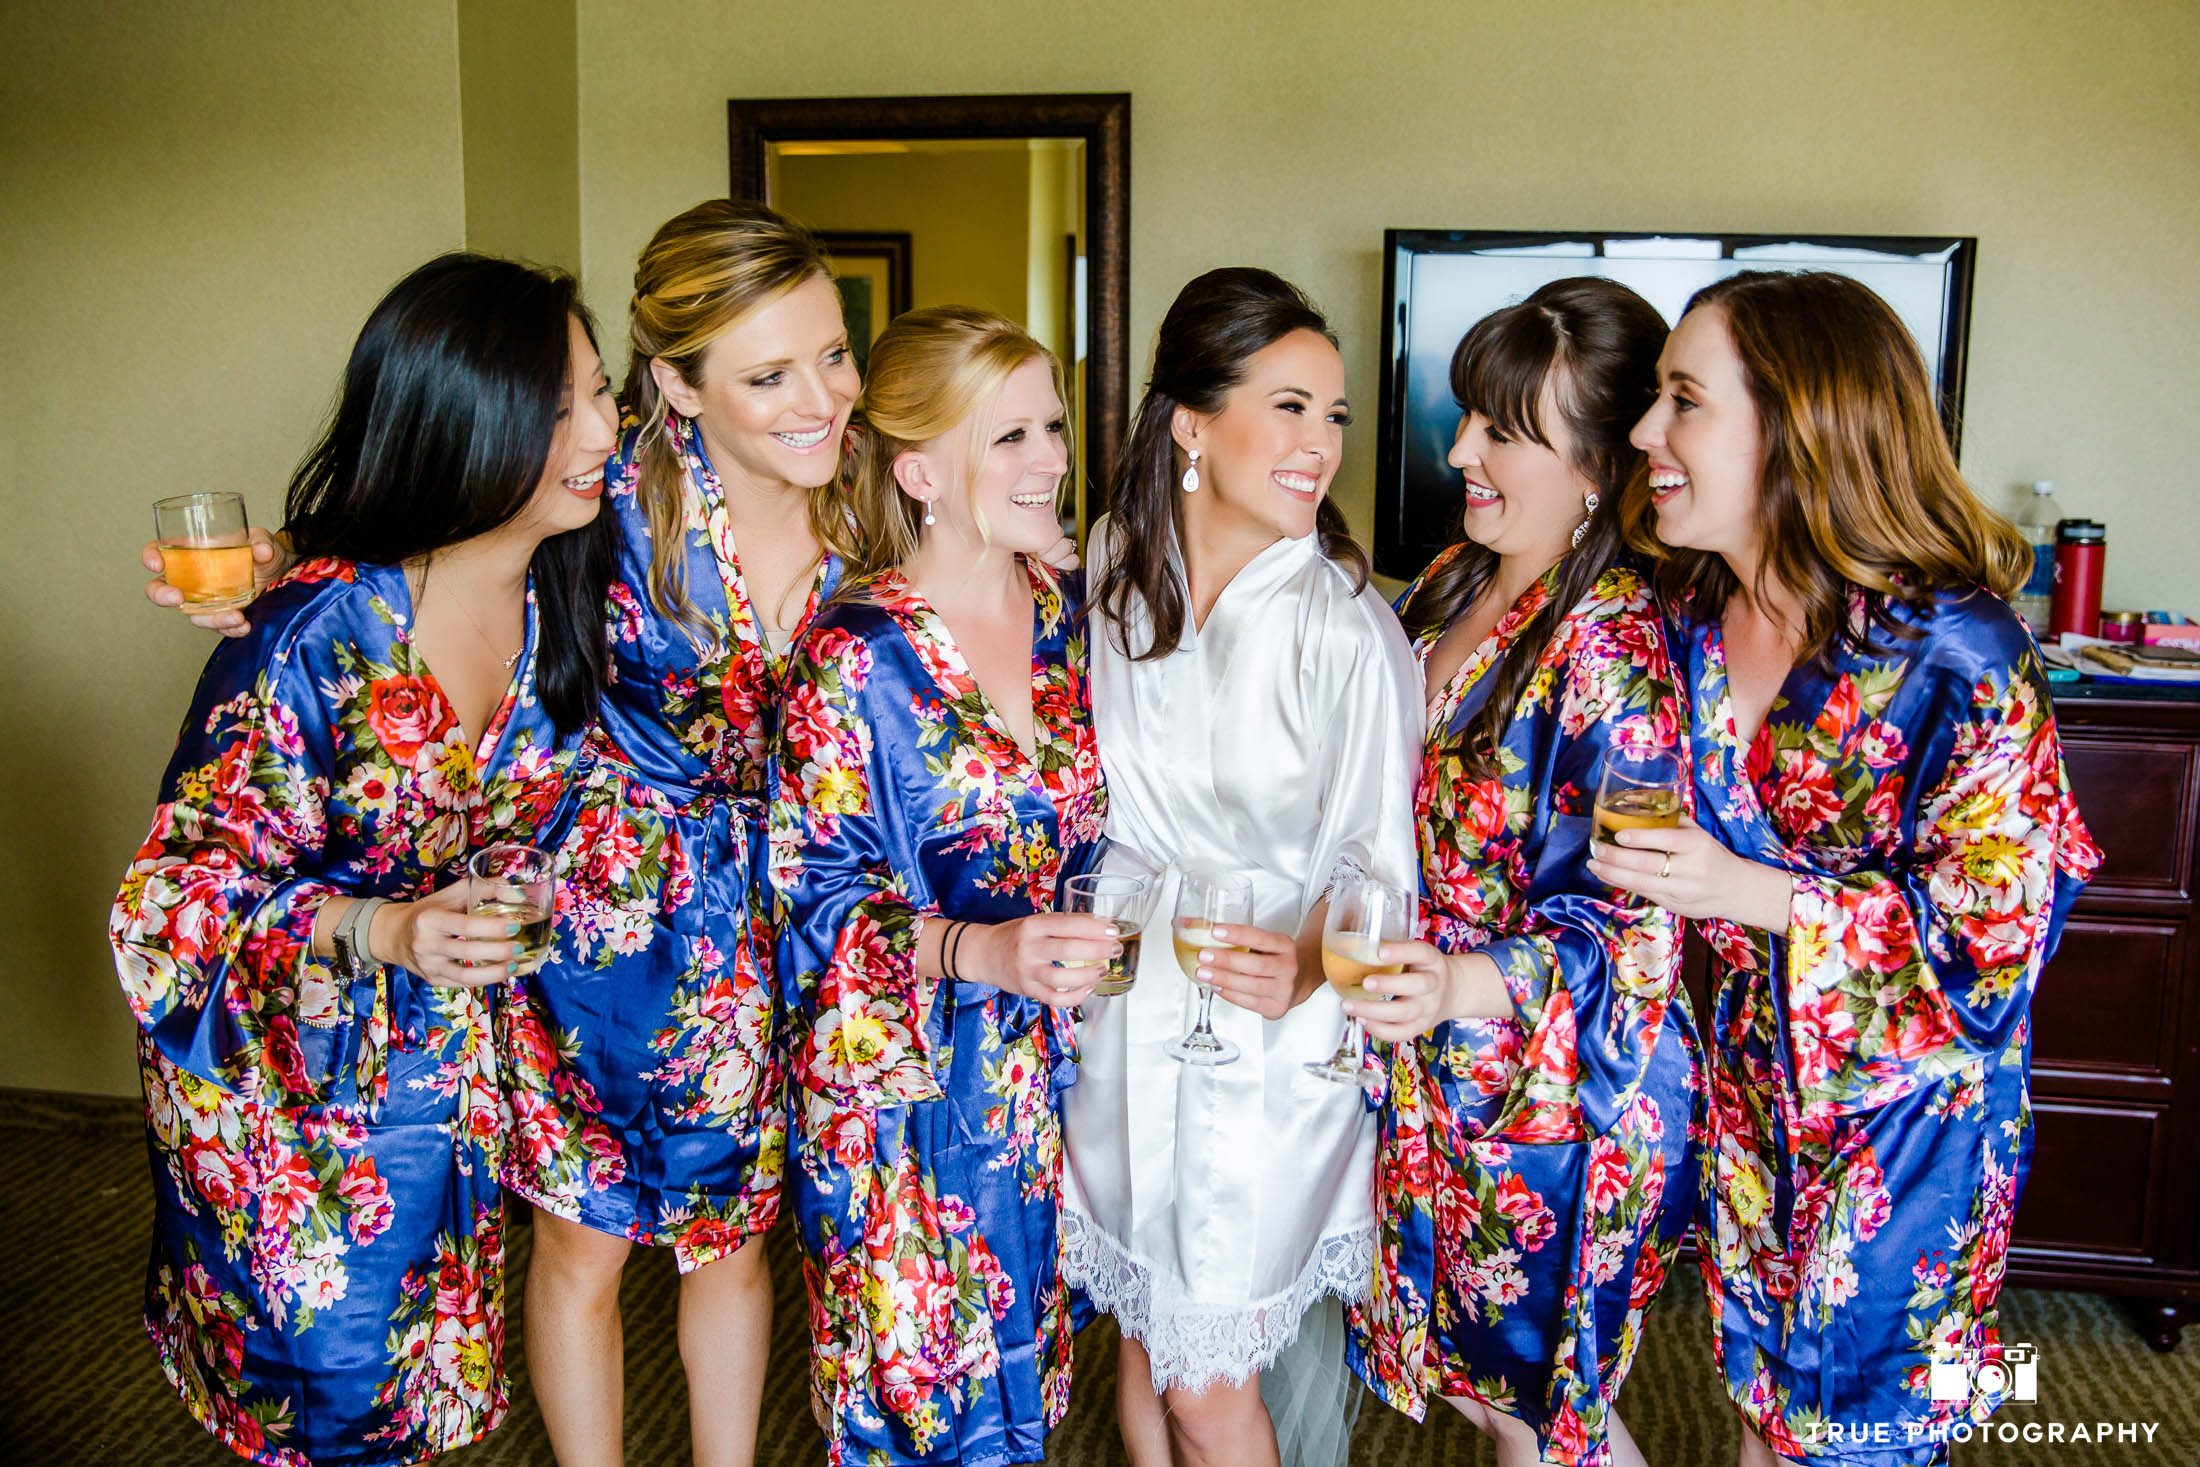 Bridesmaids in Robes Celebrate with Champagne Toast